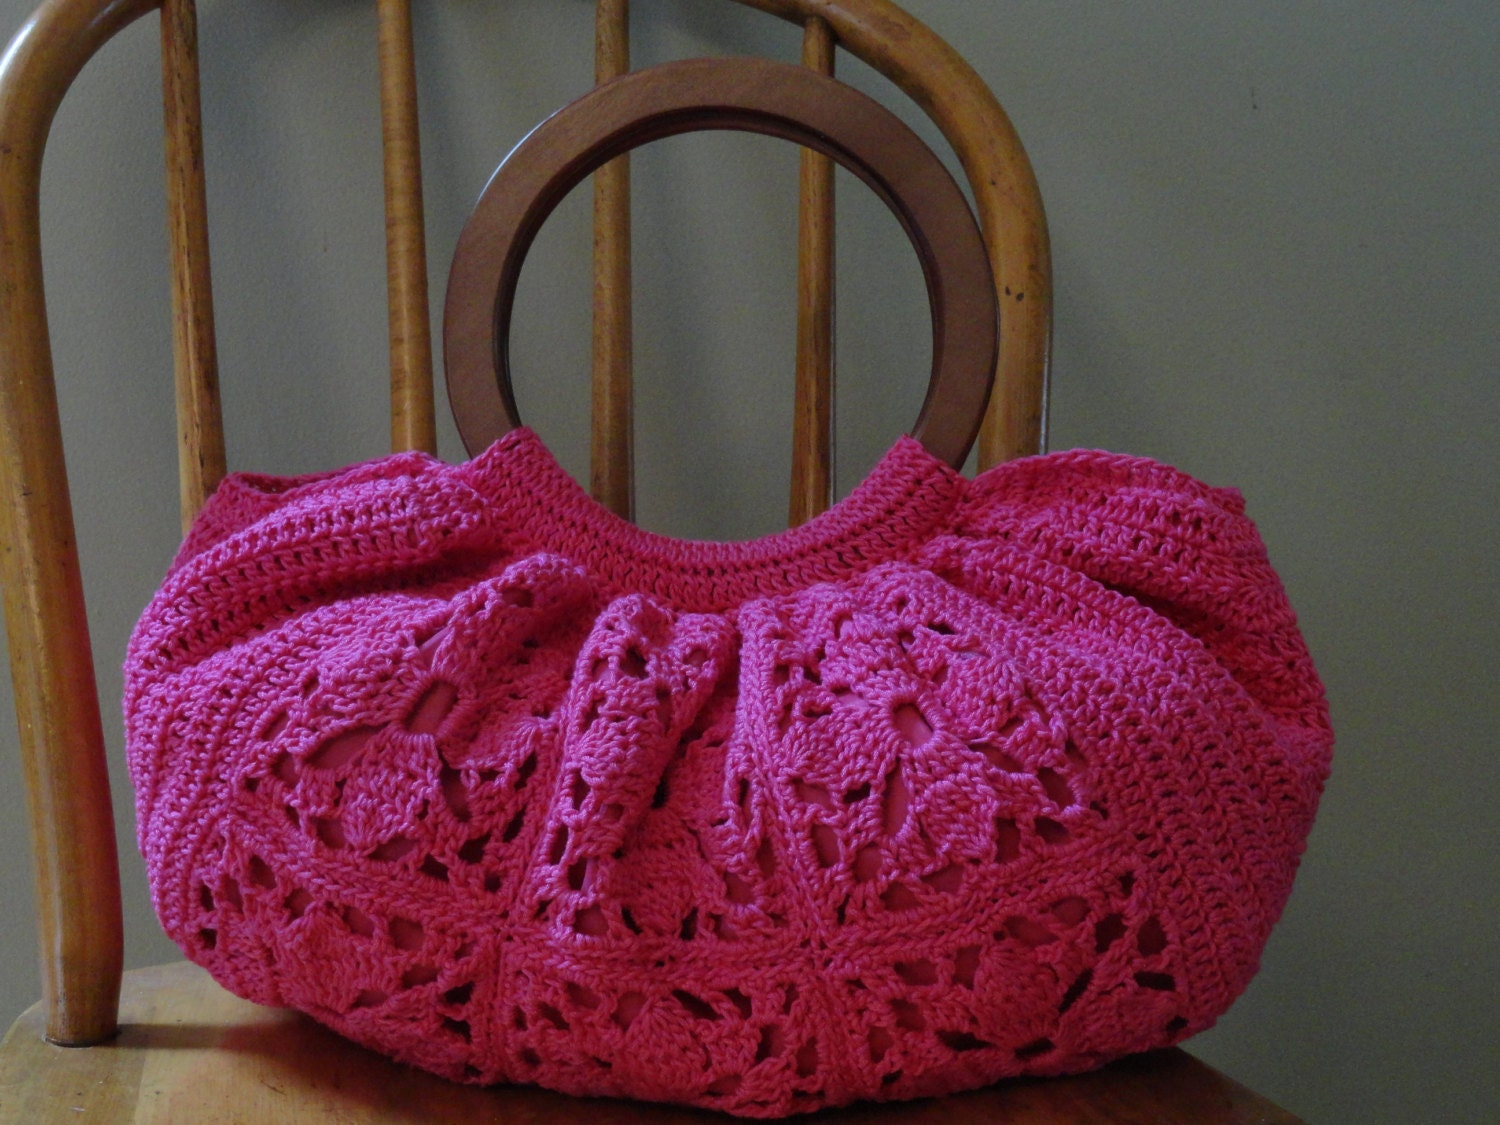 Crochet Bag Wooden Handle Pattern : Crochet Fat Bottom Bag Purse Large Bright Pink Granny Squares